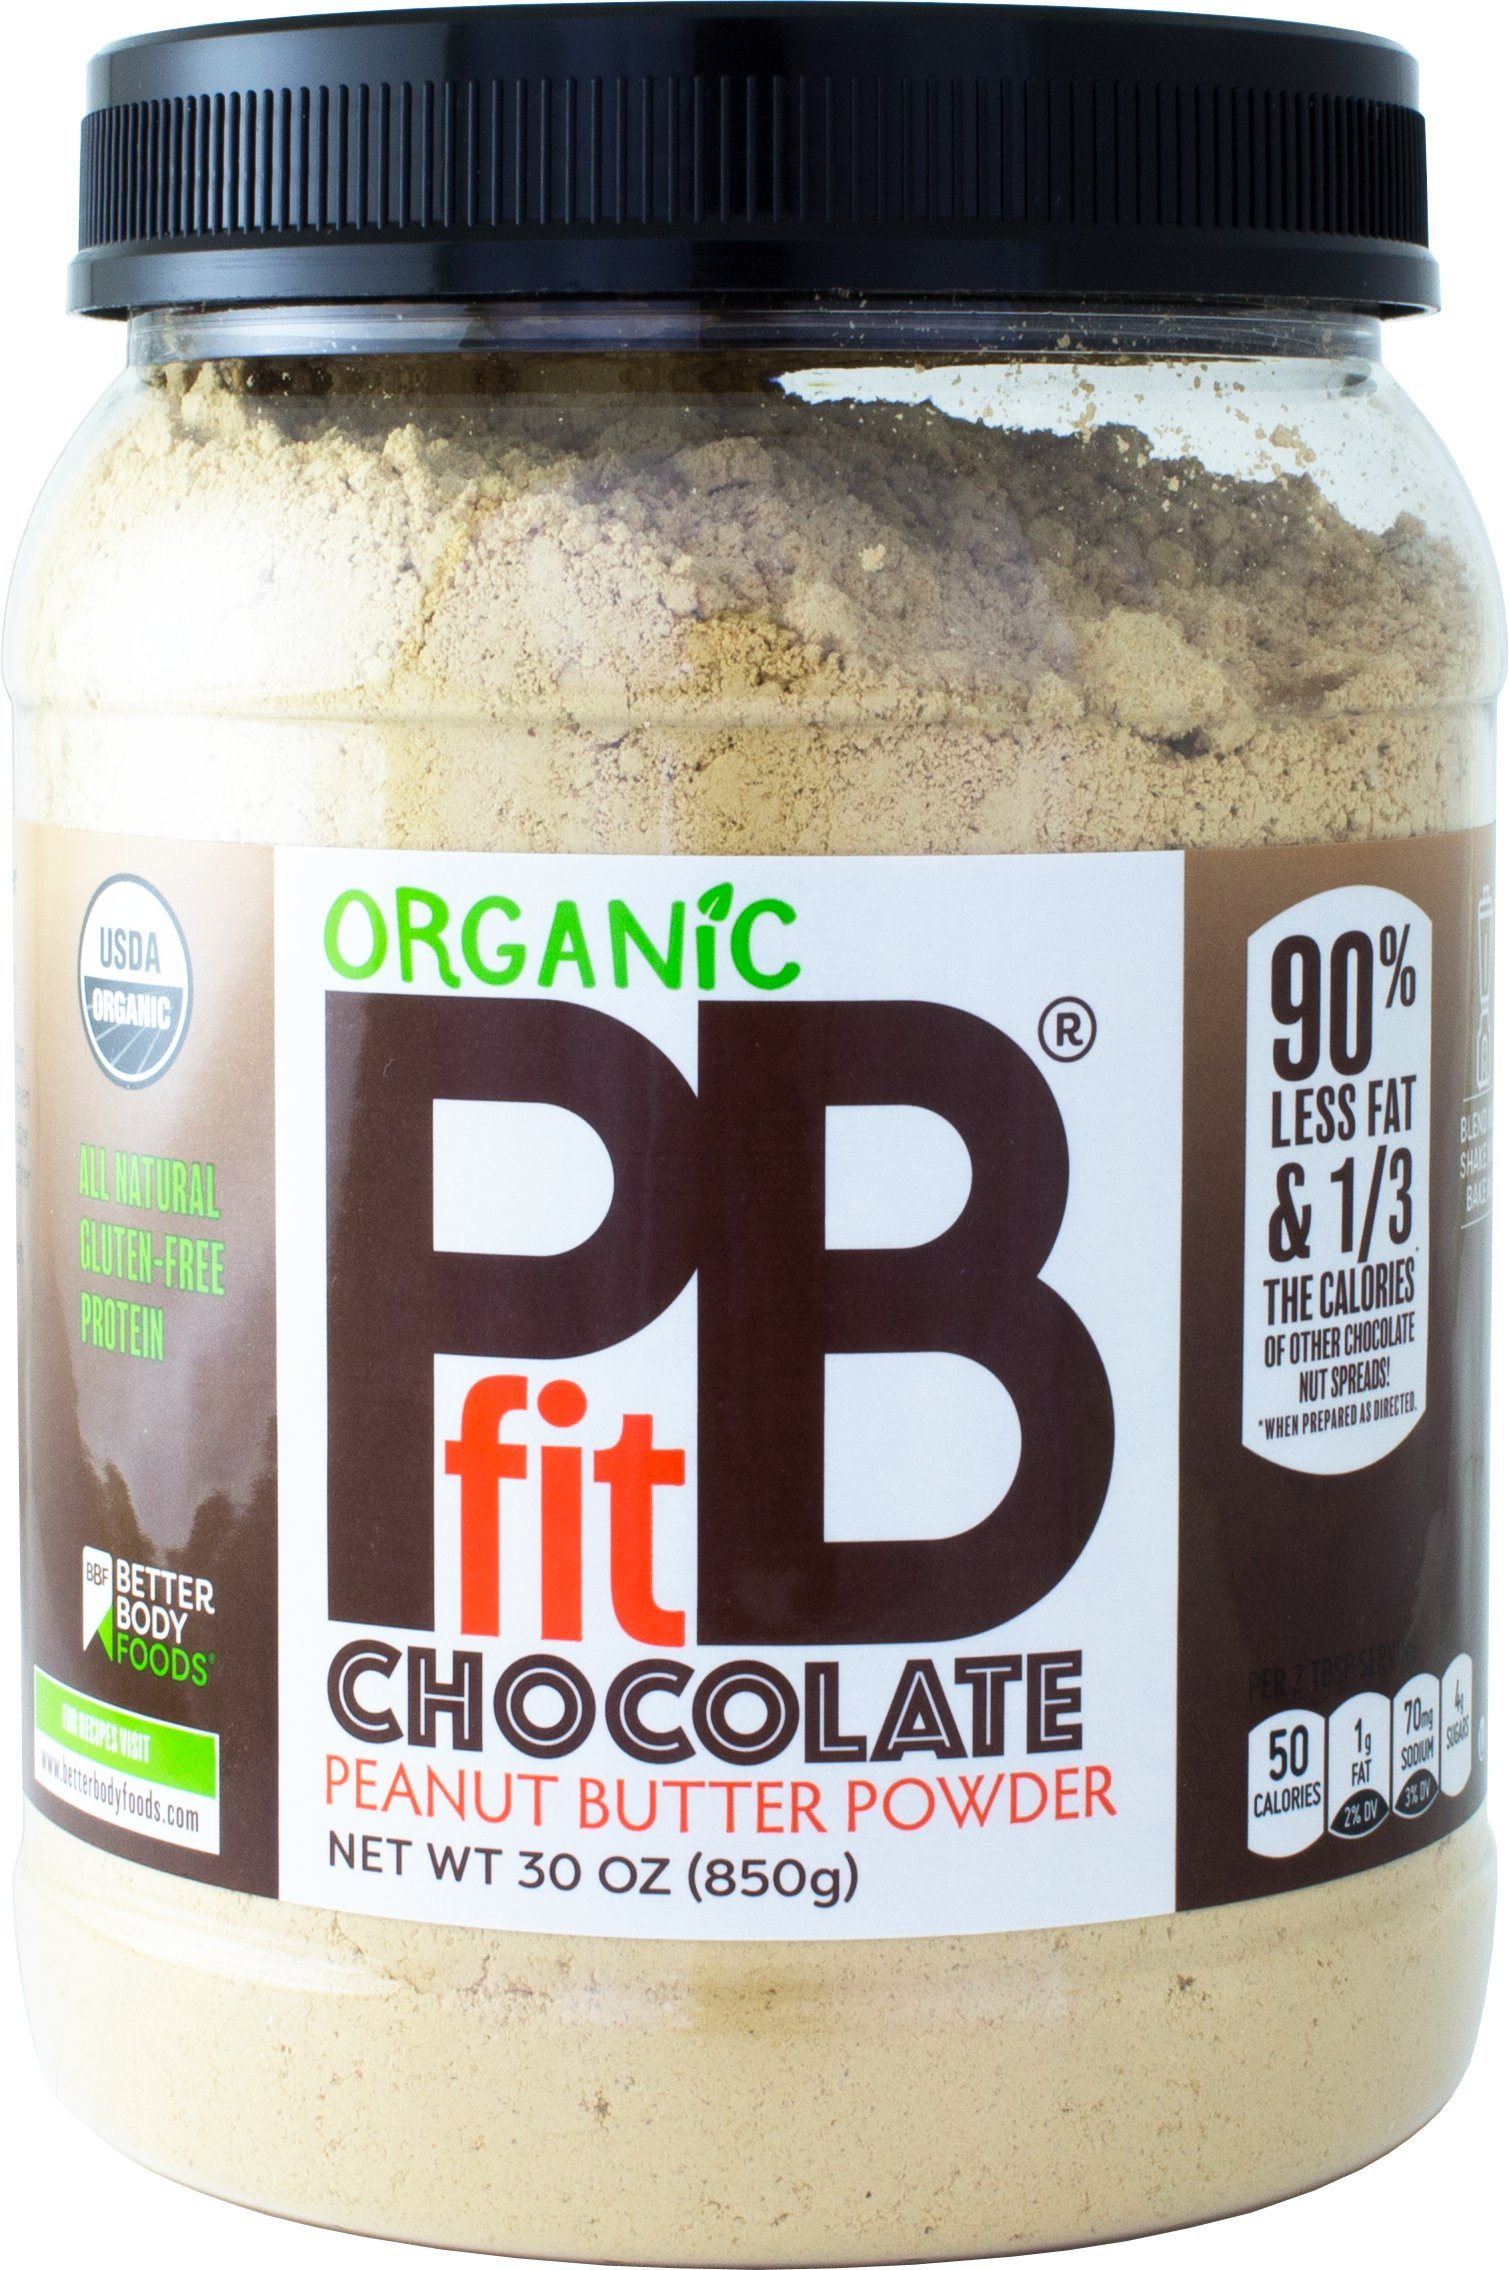 Organic Chocolate PBfit - All-Natural Chocolate Peanut Butter Powder, Organic Peanut Butter, Produced by BetterBody Foods - 30 oz by PBfit